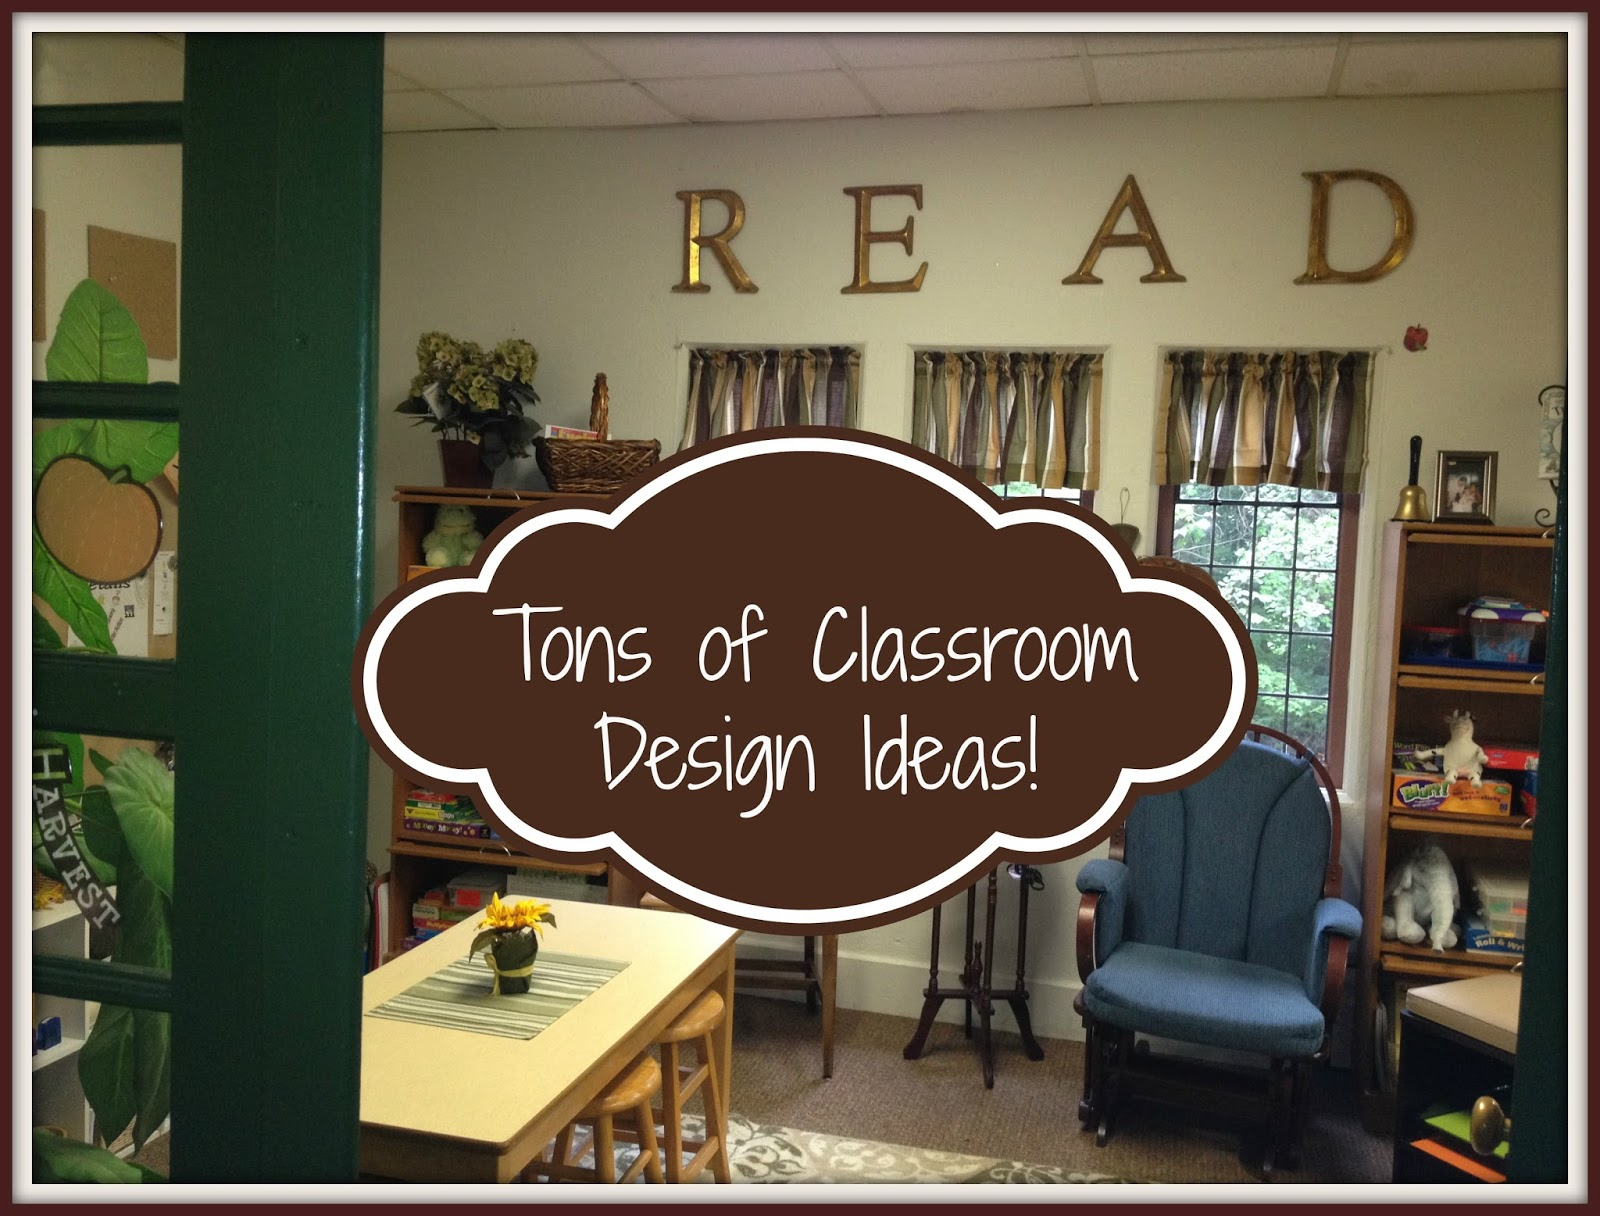 Design Ideas For Classroom ~ Tons of classroom design ideas for setting up your cozy